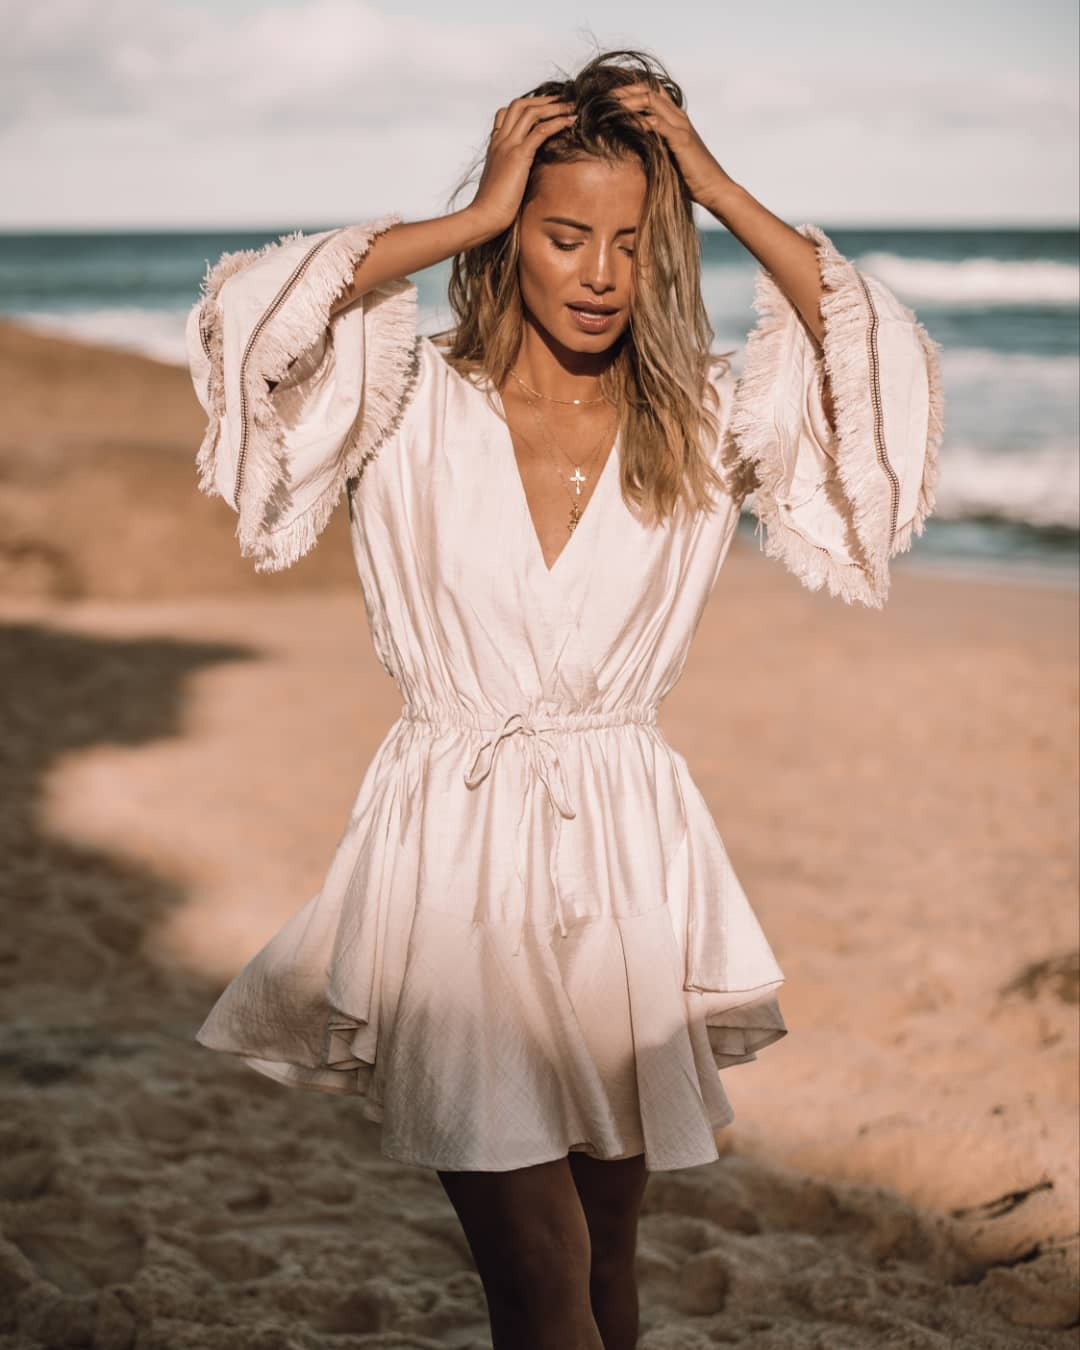 Pastel Mini Robe Dress With Wide Sleeves For Summer Beach Walks 2021